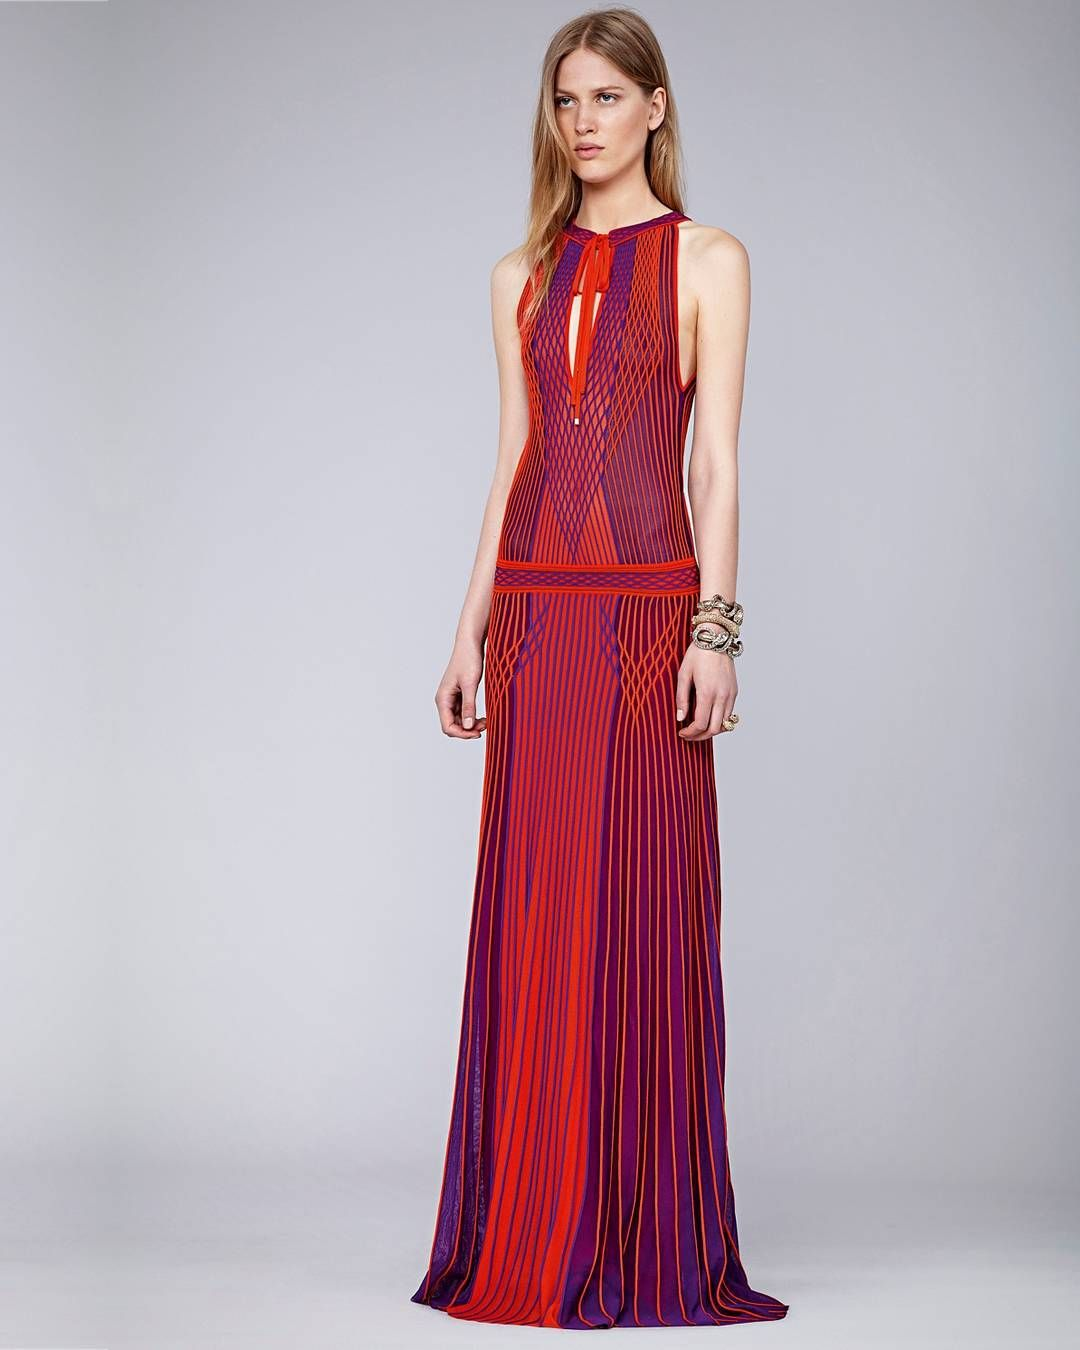 """""""Get inspired by this stylish #RobertoCavalliSS16 long dress. Shop now through the link in bio."""""""